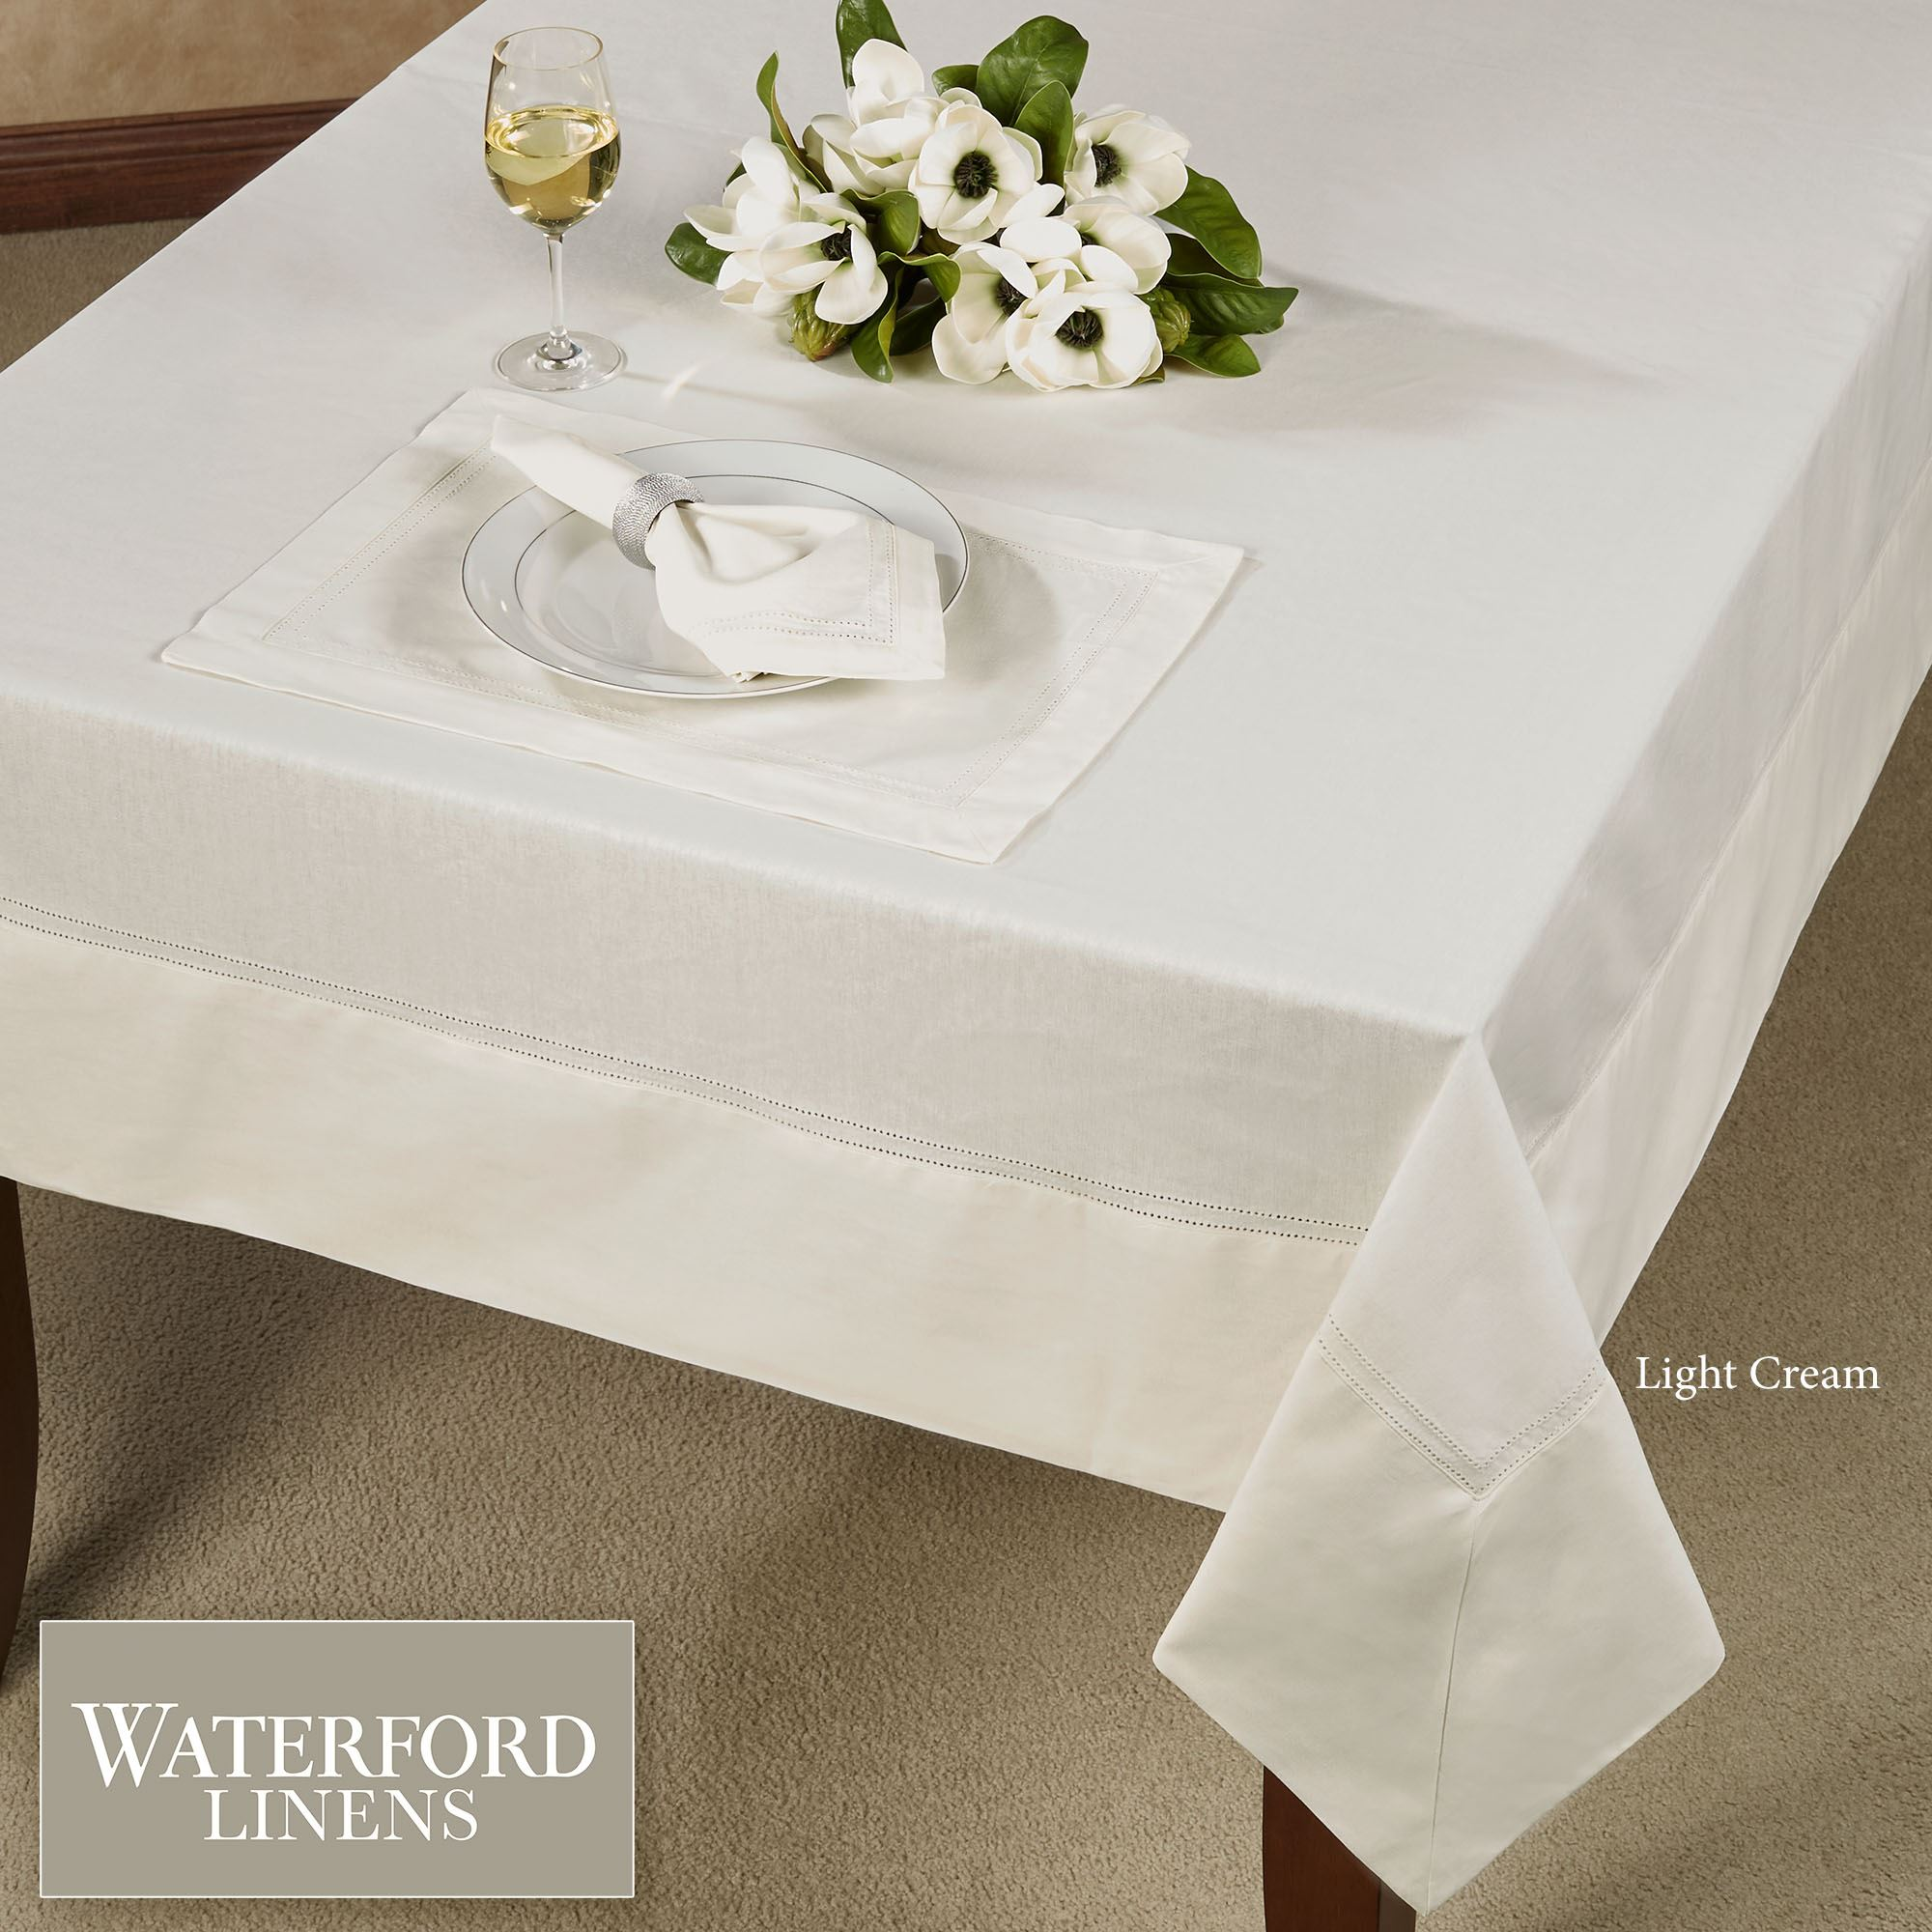 Dining Room Table Linens the pioneer woman country garden tablecloth 52 x 70 in walmartcom Corra Table Linens From Waterford Linens